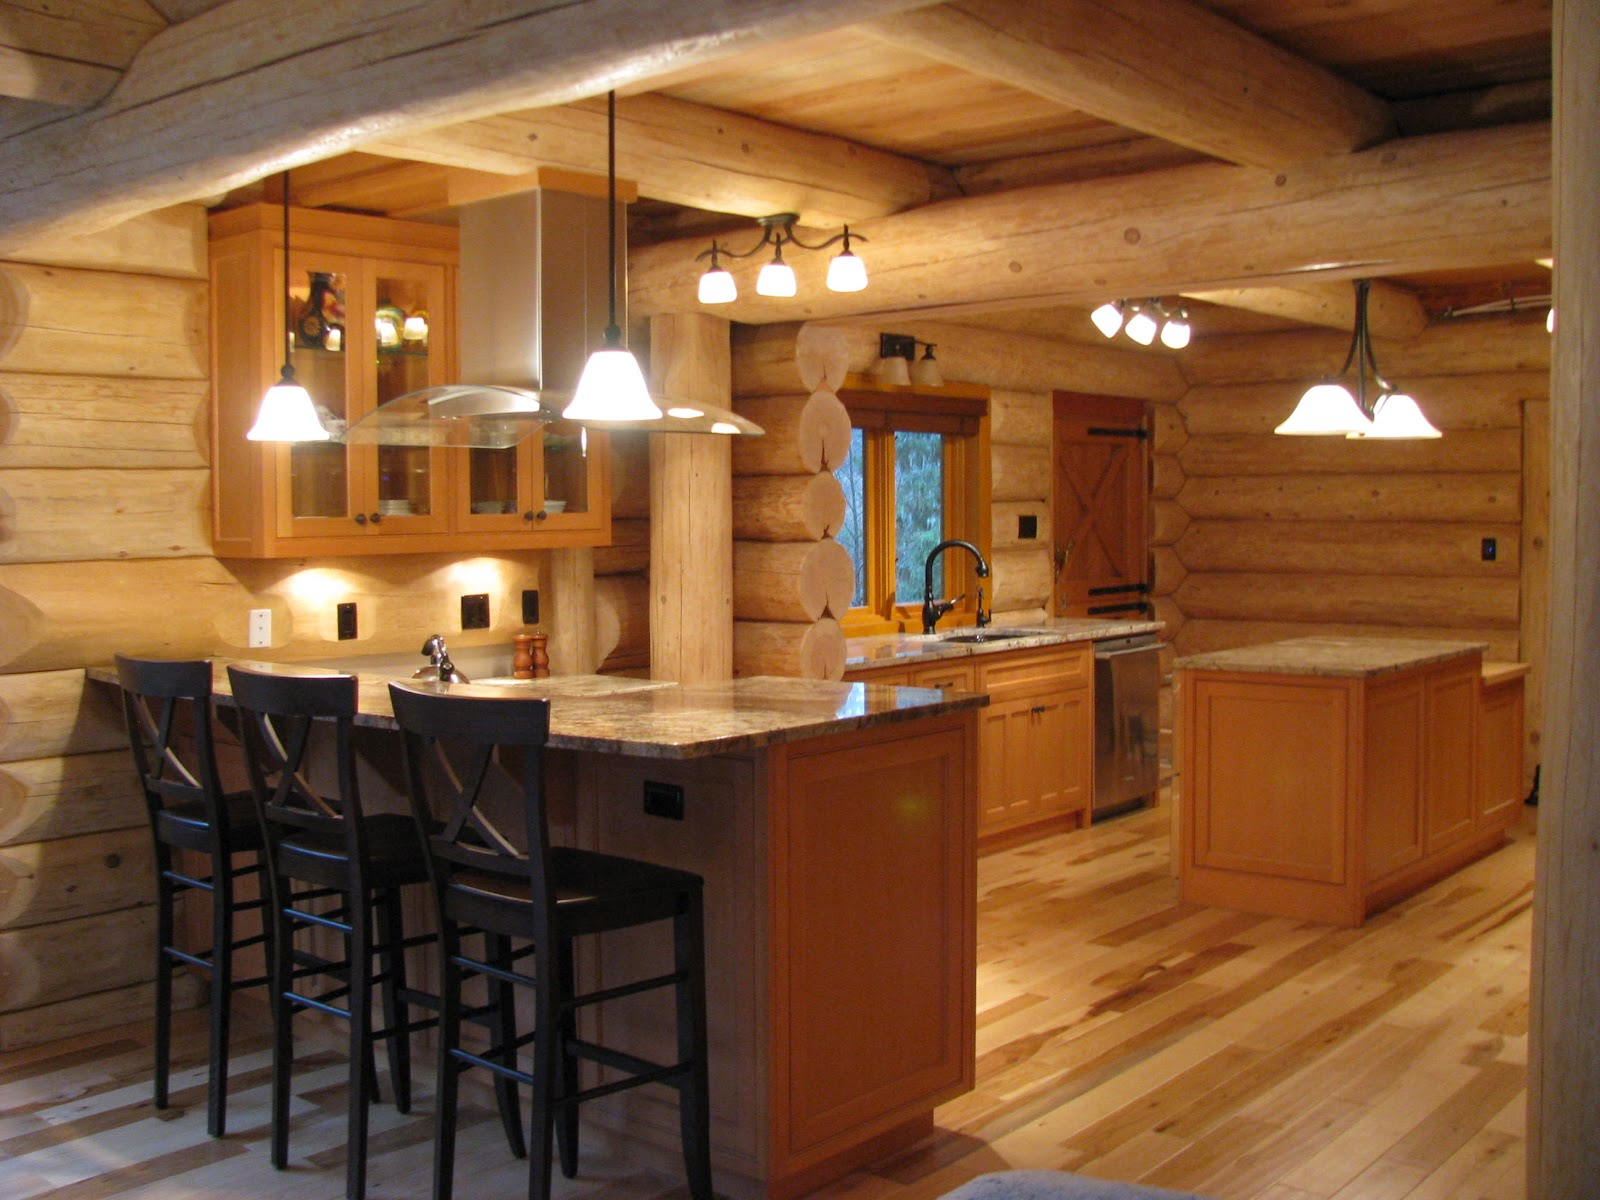 Custom Kitchens Cabinets in Log Homes